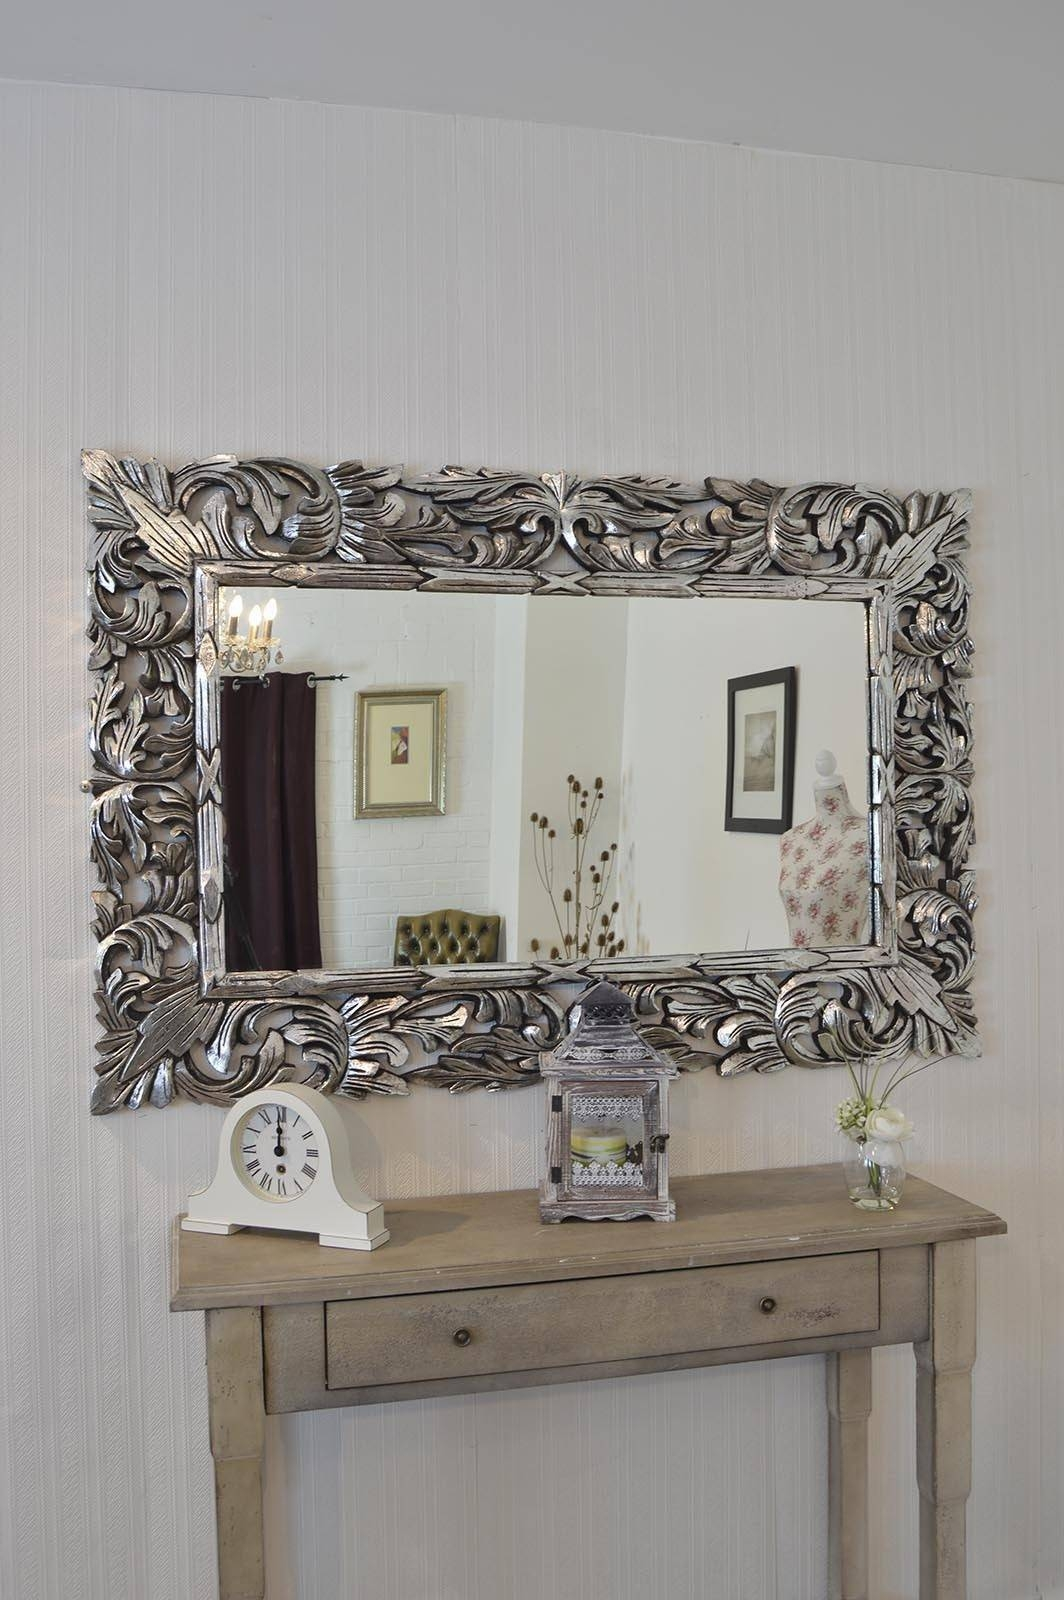 Where To Buy Large Mirrors